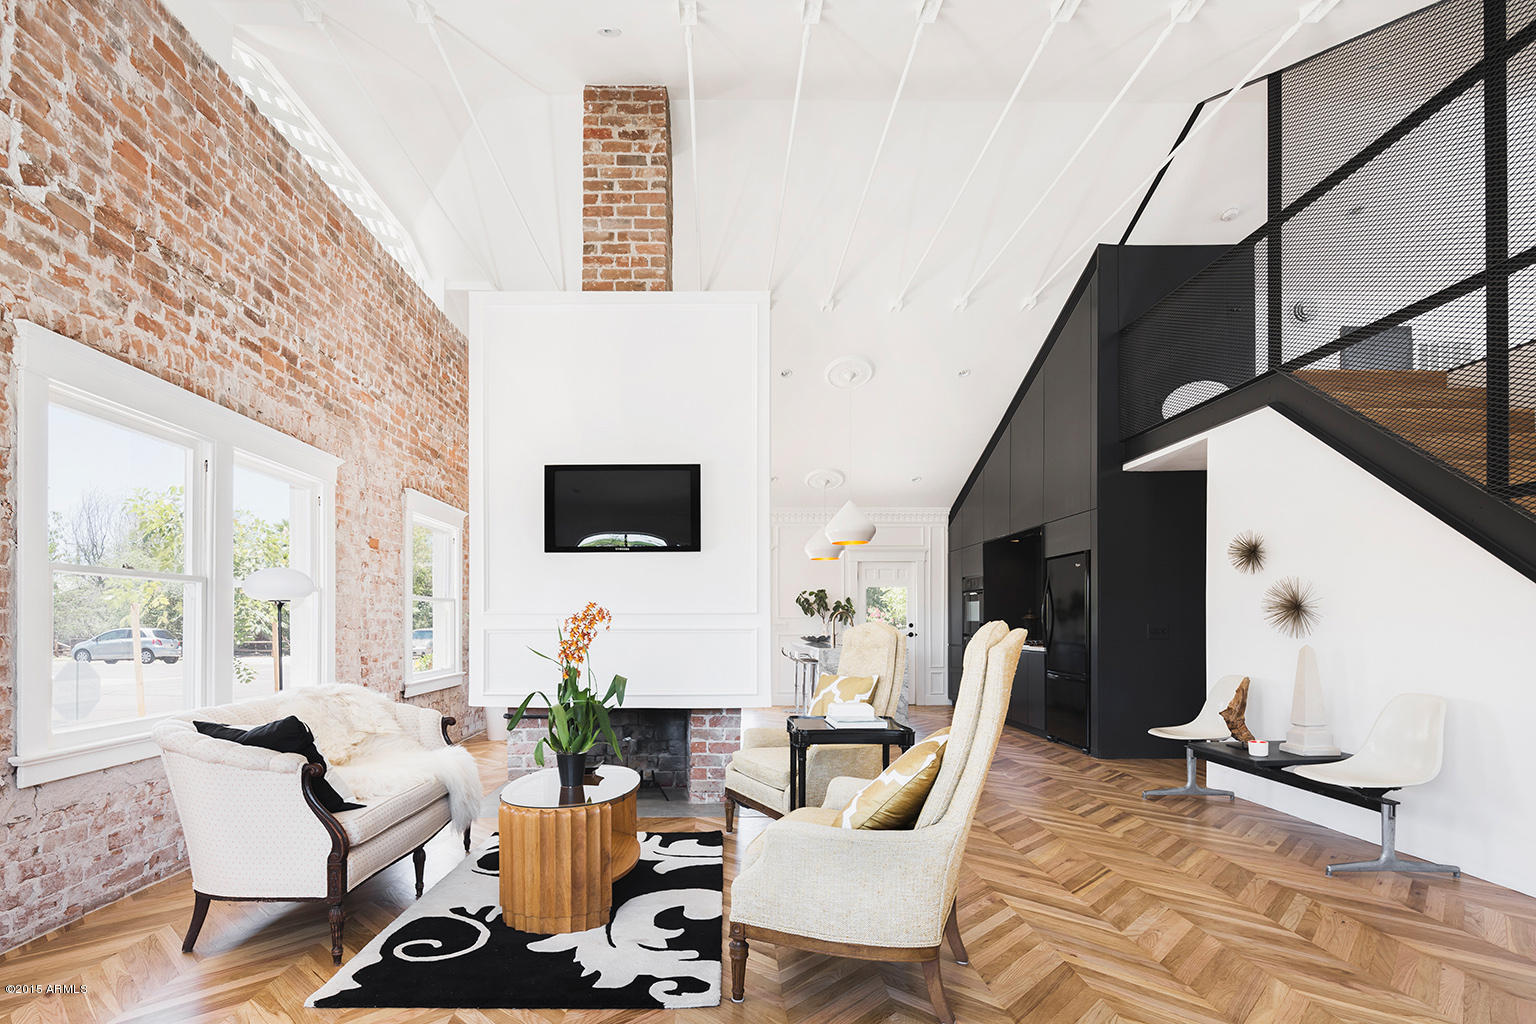 Exposed Brick Wall - Modern Bungalow Style